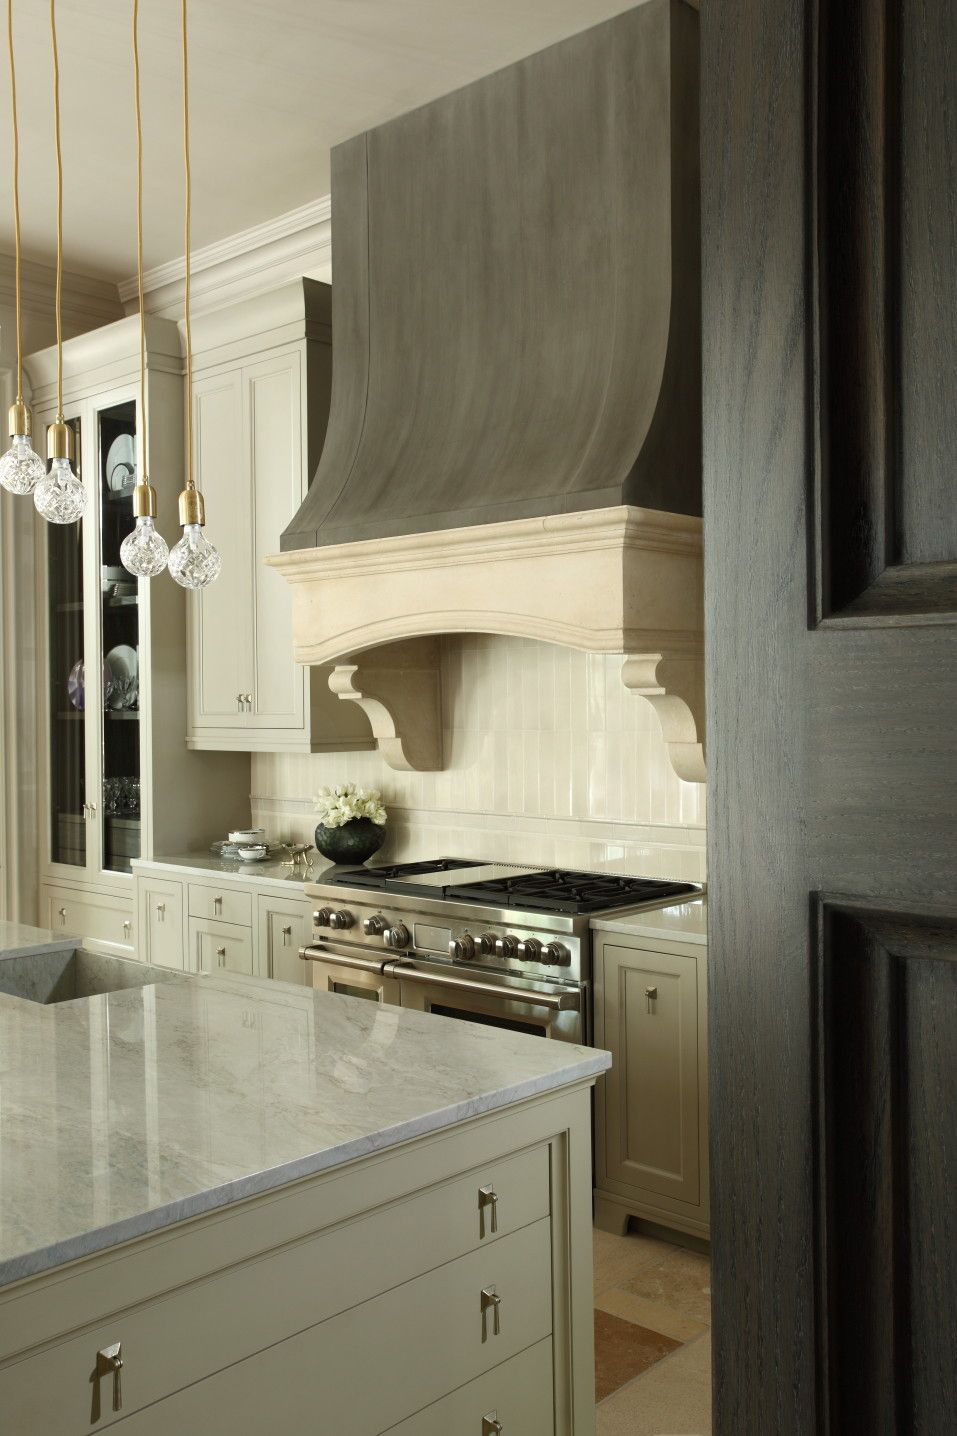 Karpaty Cabinets Inc Custom Kitchen Cabinets Atlanta Georgia Elegant Kitchen Design Kitchen Styles French Kitchen Design